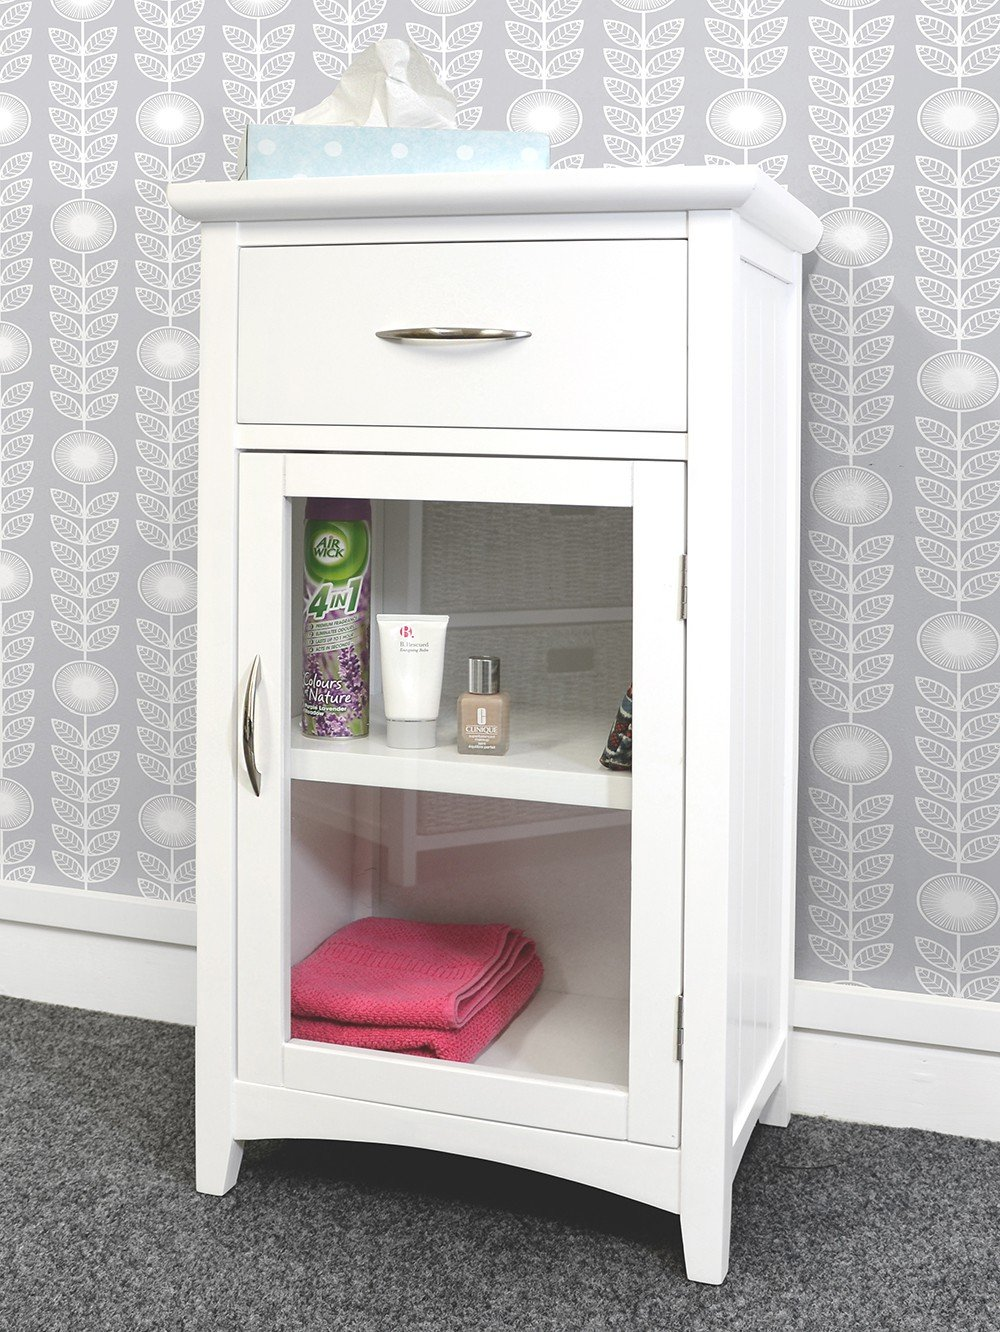 Ascot vanity unit, FULLY ASSEMBLED glass door cabinet in Black White, brushed chrome handles, bathroom storage (black)